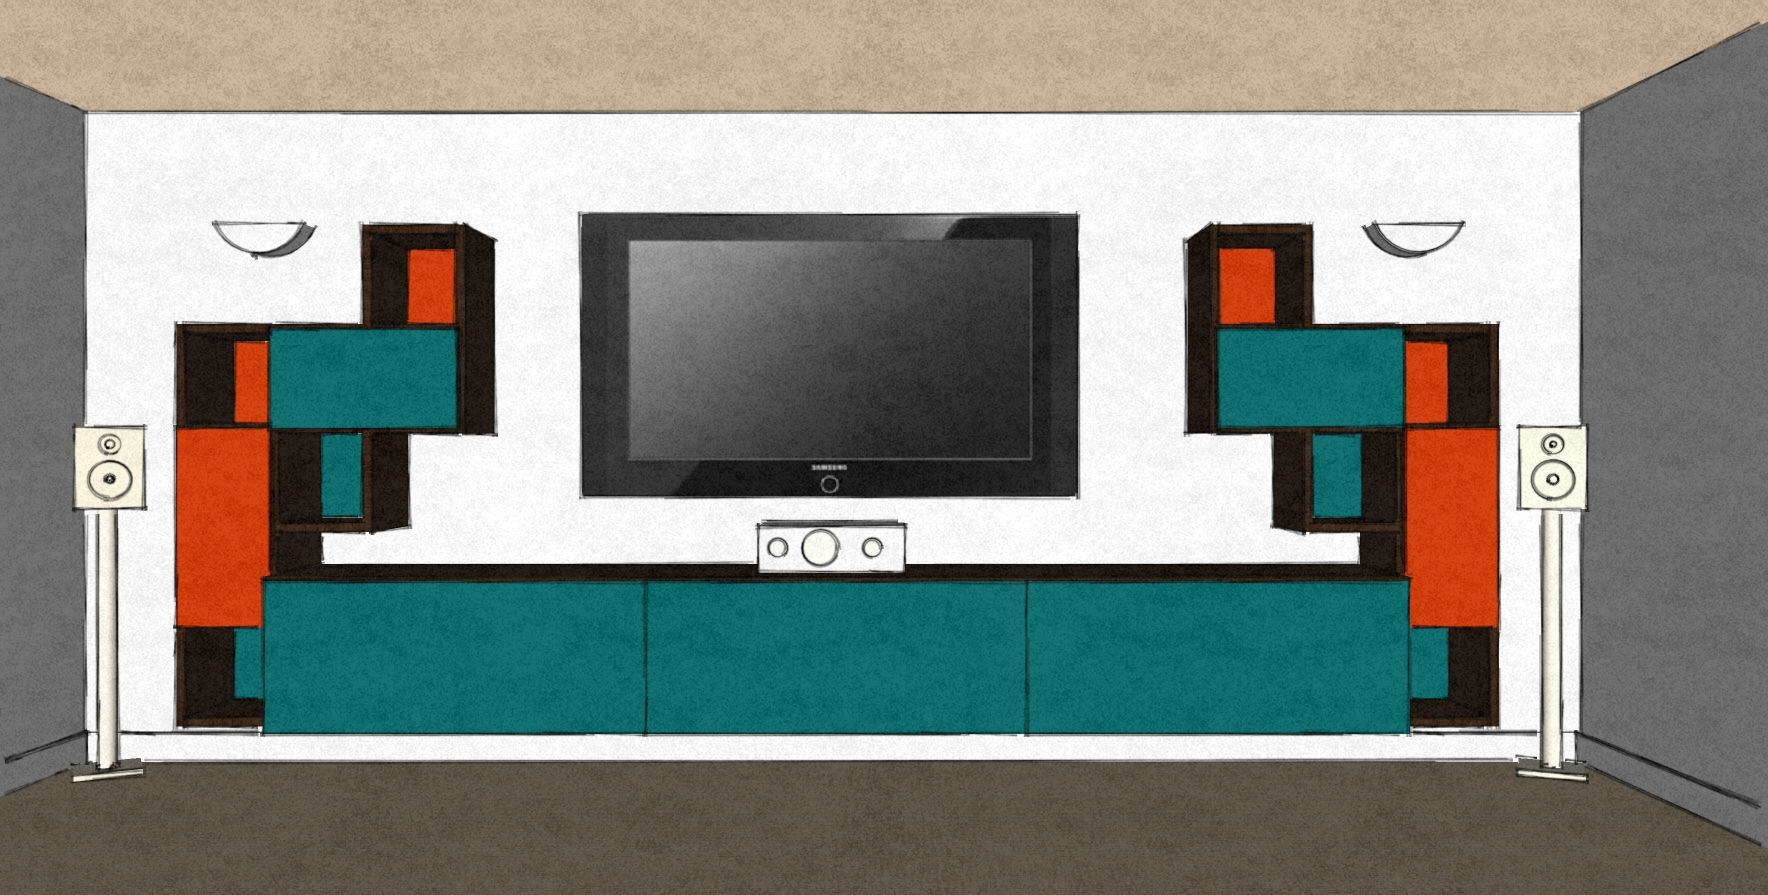 D24 media room design in Turquoise and orange matt lacquer with Therm Oak.jpg